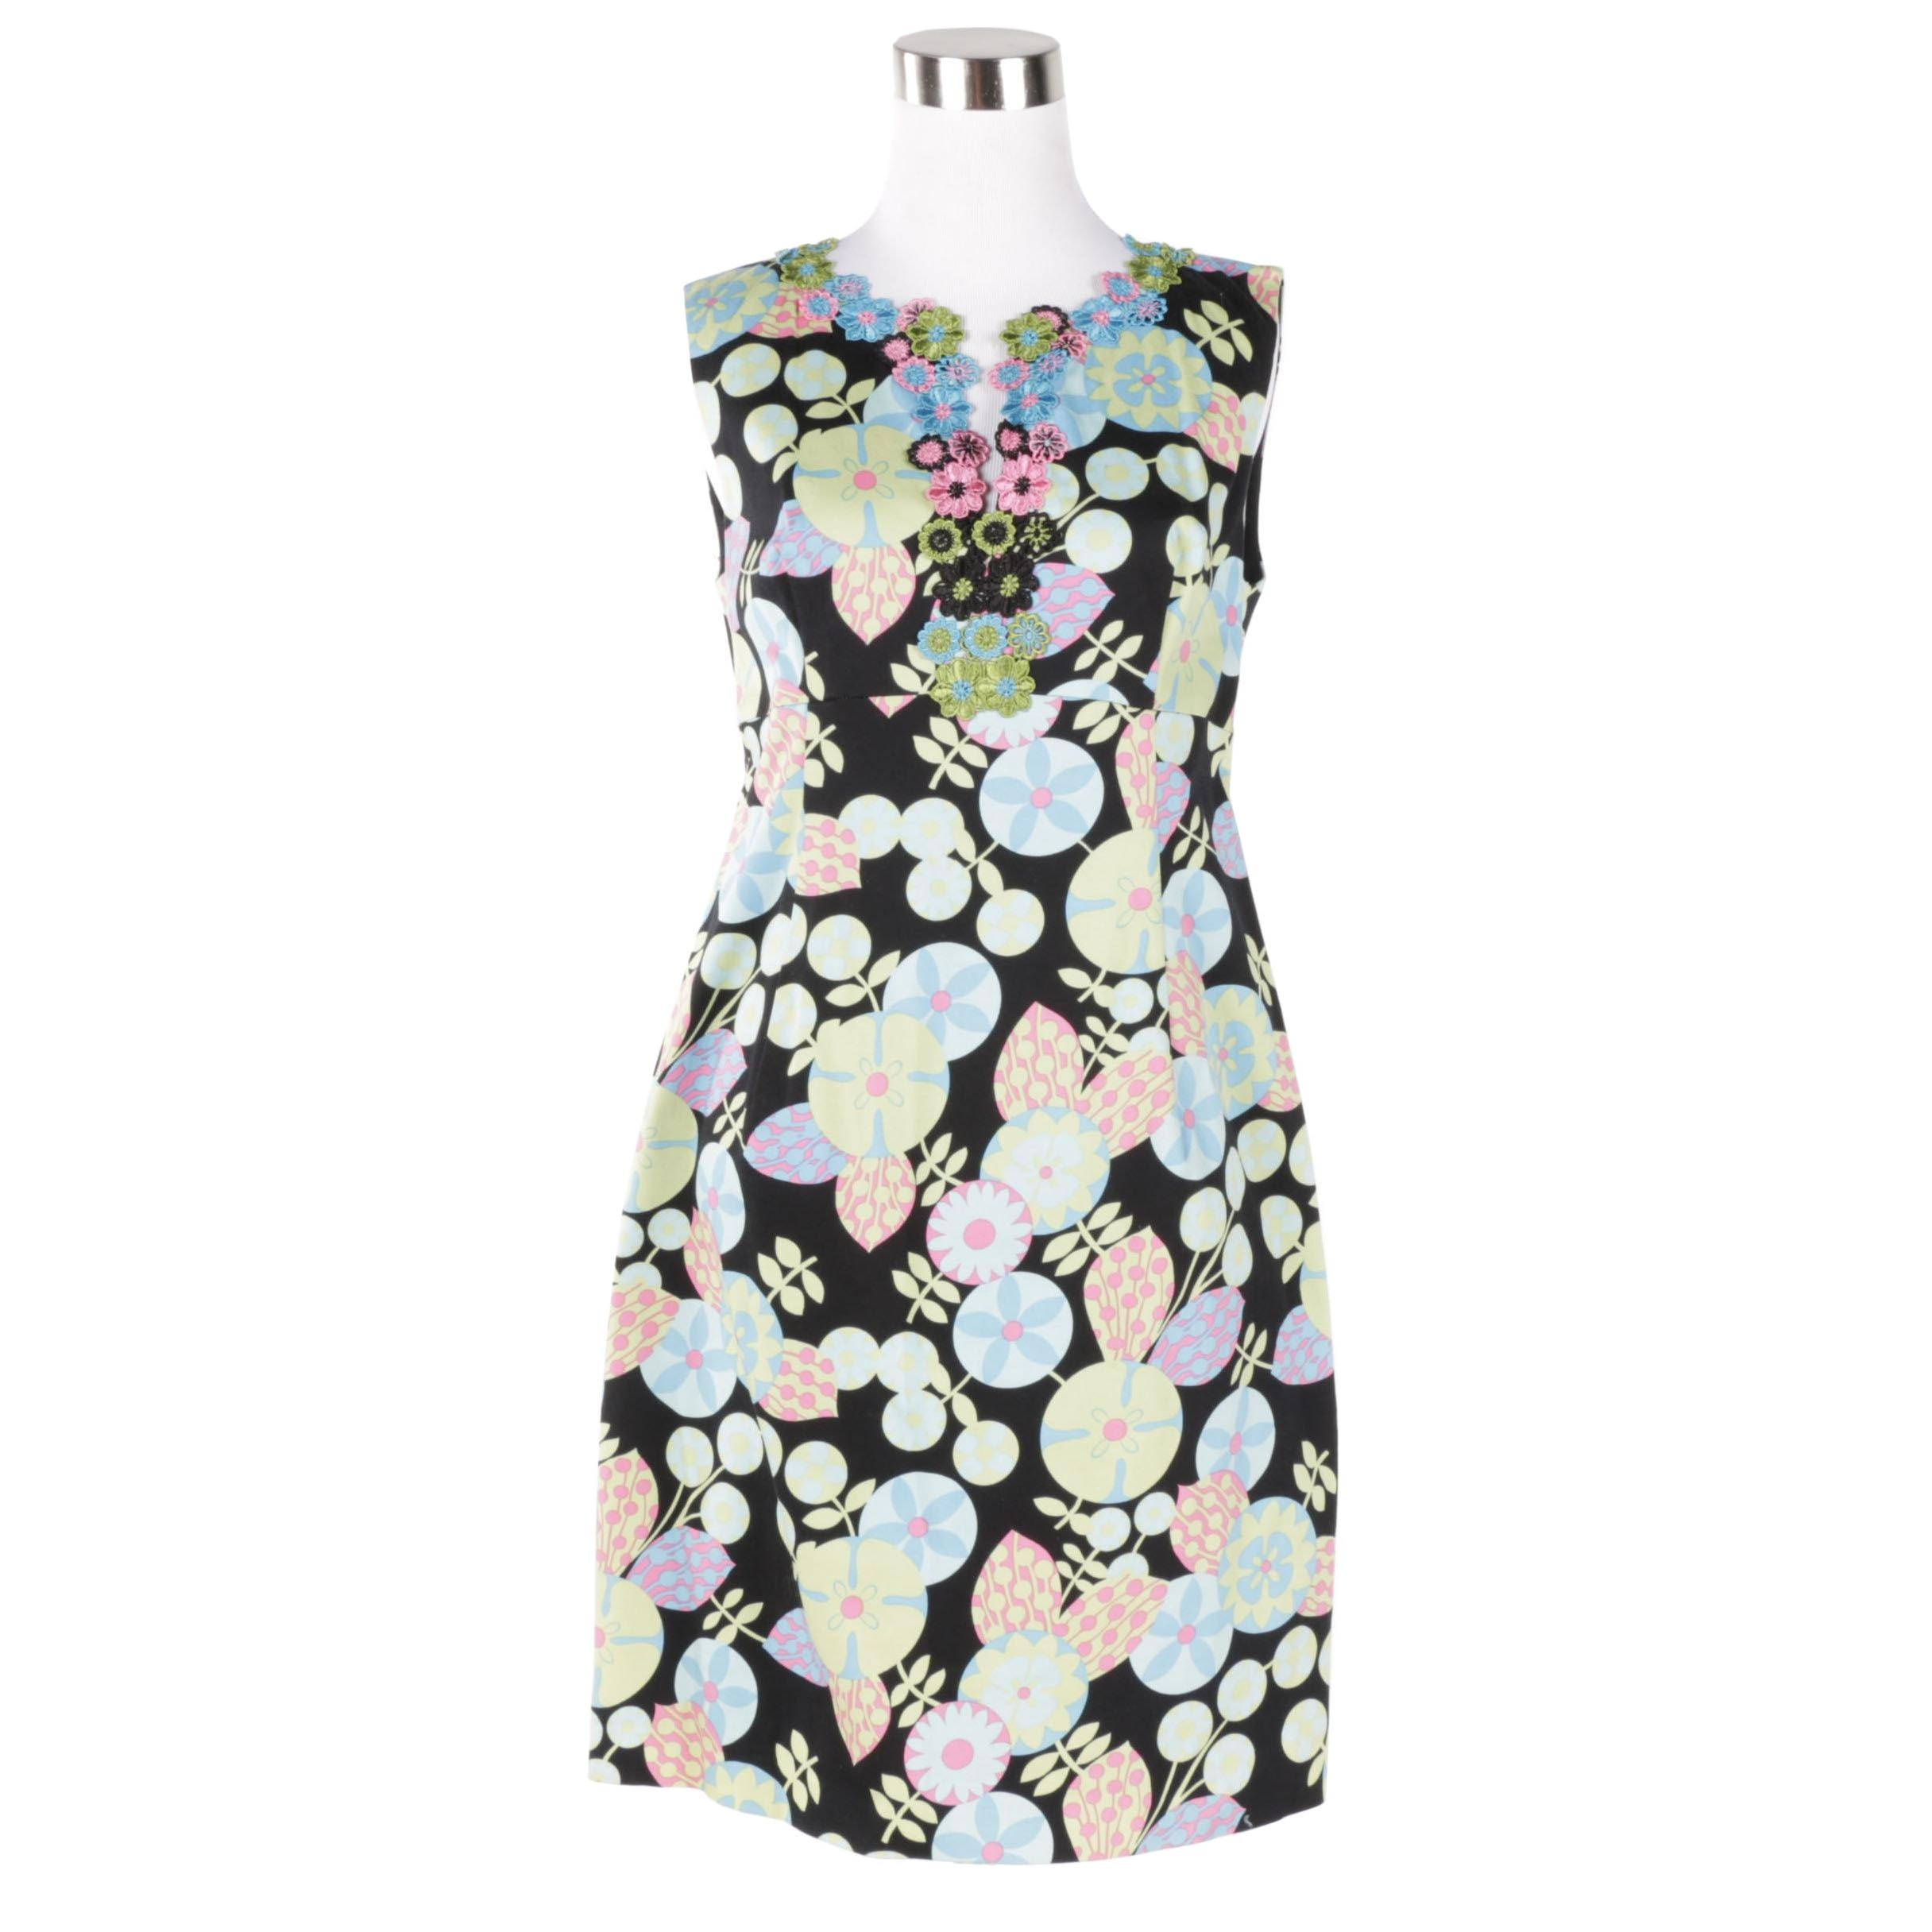 Anna Sui Dress for A Pea in the Pod